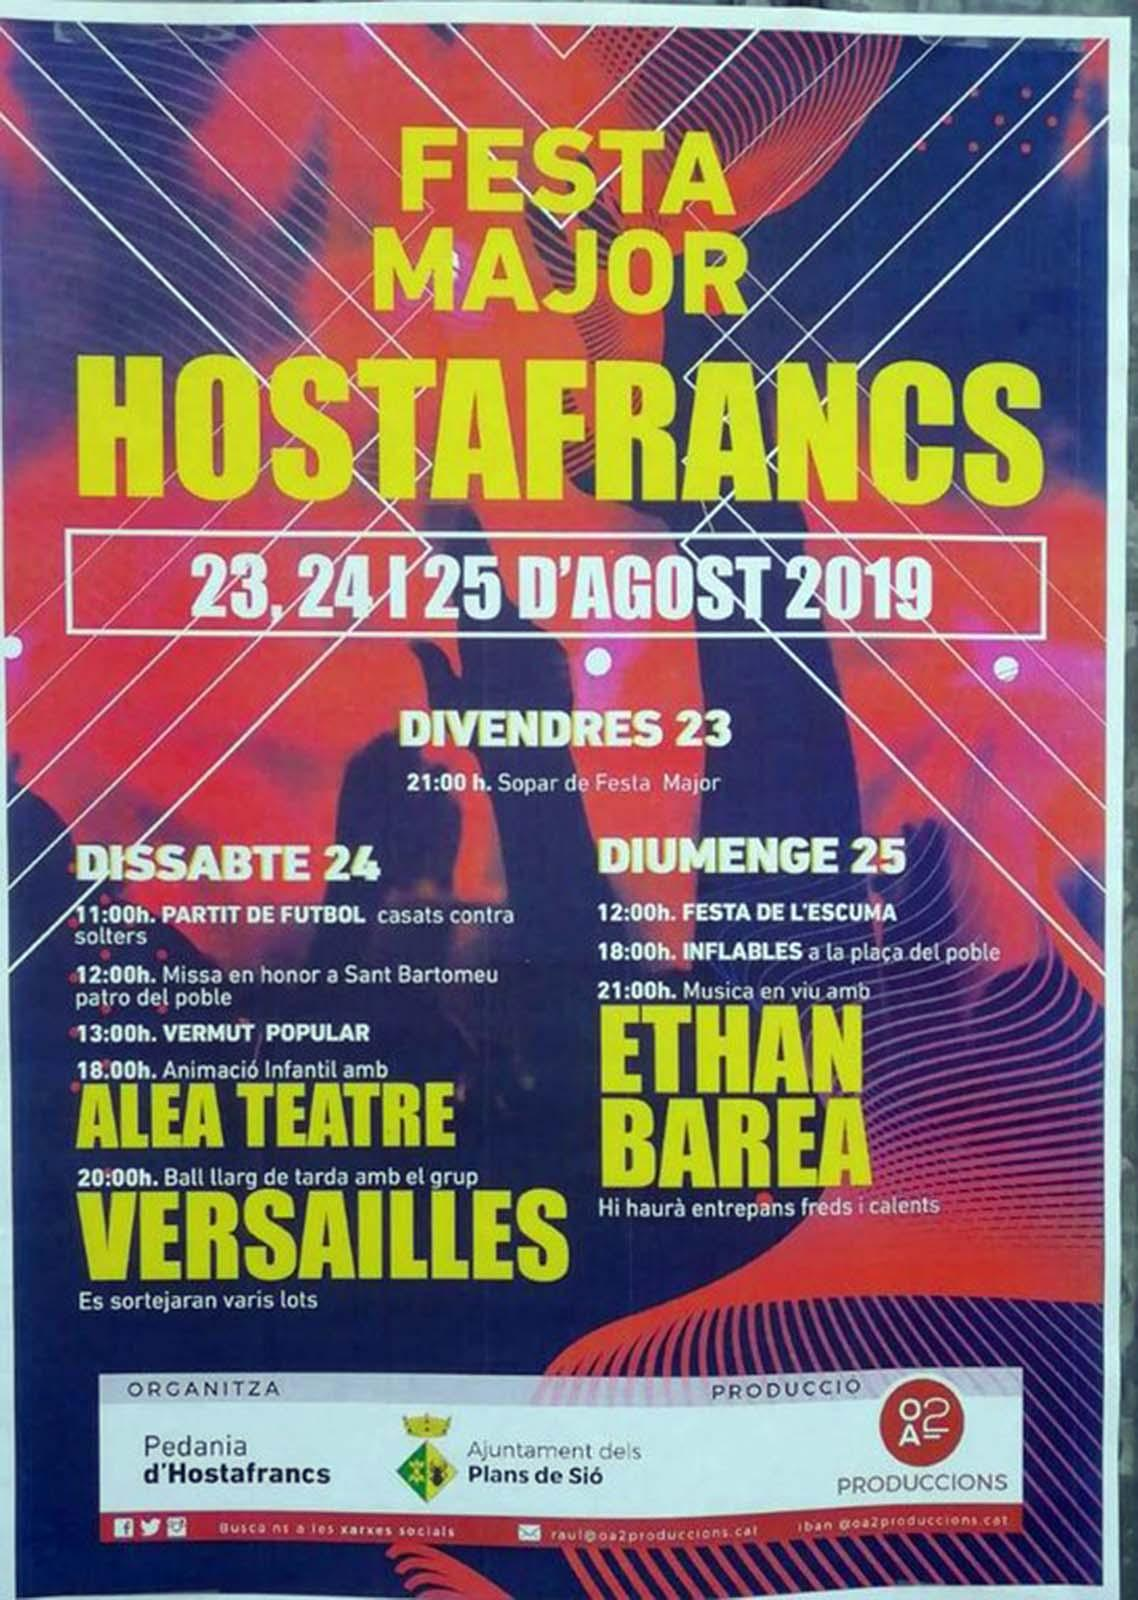 Festa Major d'Hostafrancs 2019